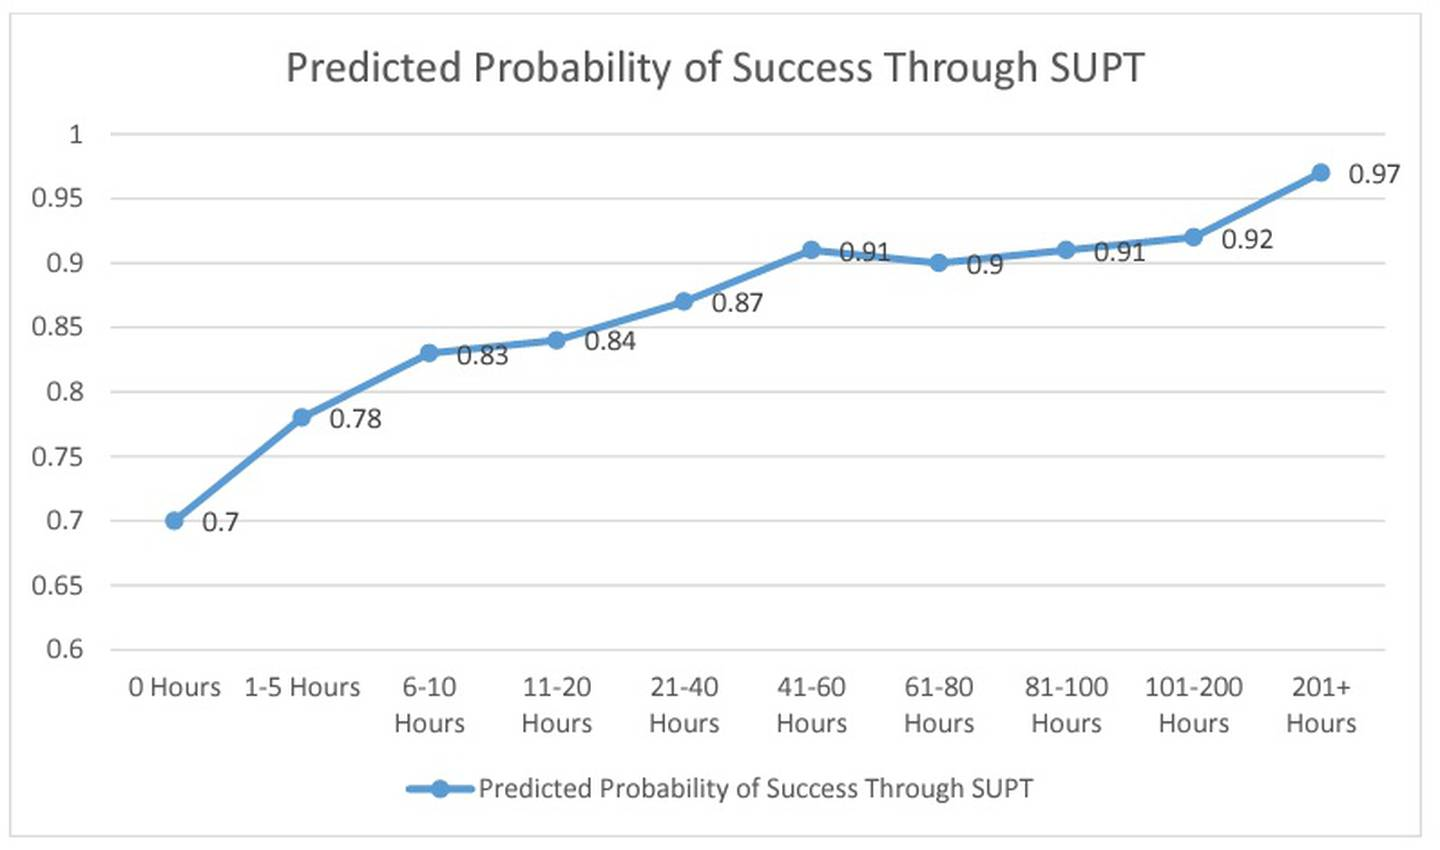 An Air Force analysis found that the predicted probability of success a a pilot increases substantially from 0 hours to 41-60 hours of prior experience in a cockpit, but relatively plateaus as hours continue to accumulate. Forty-one to 60 hours of FAA-approved flight hours is the range typically required for a private pilot's license. (Air Force chart)